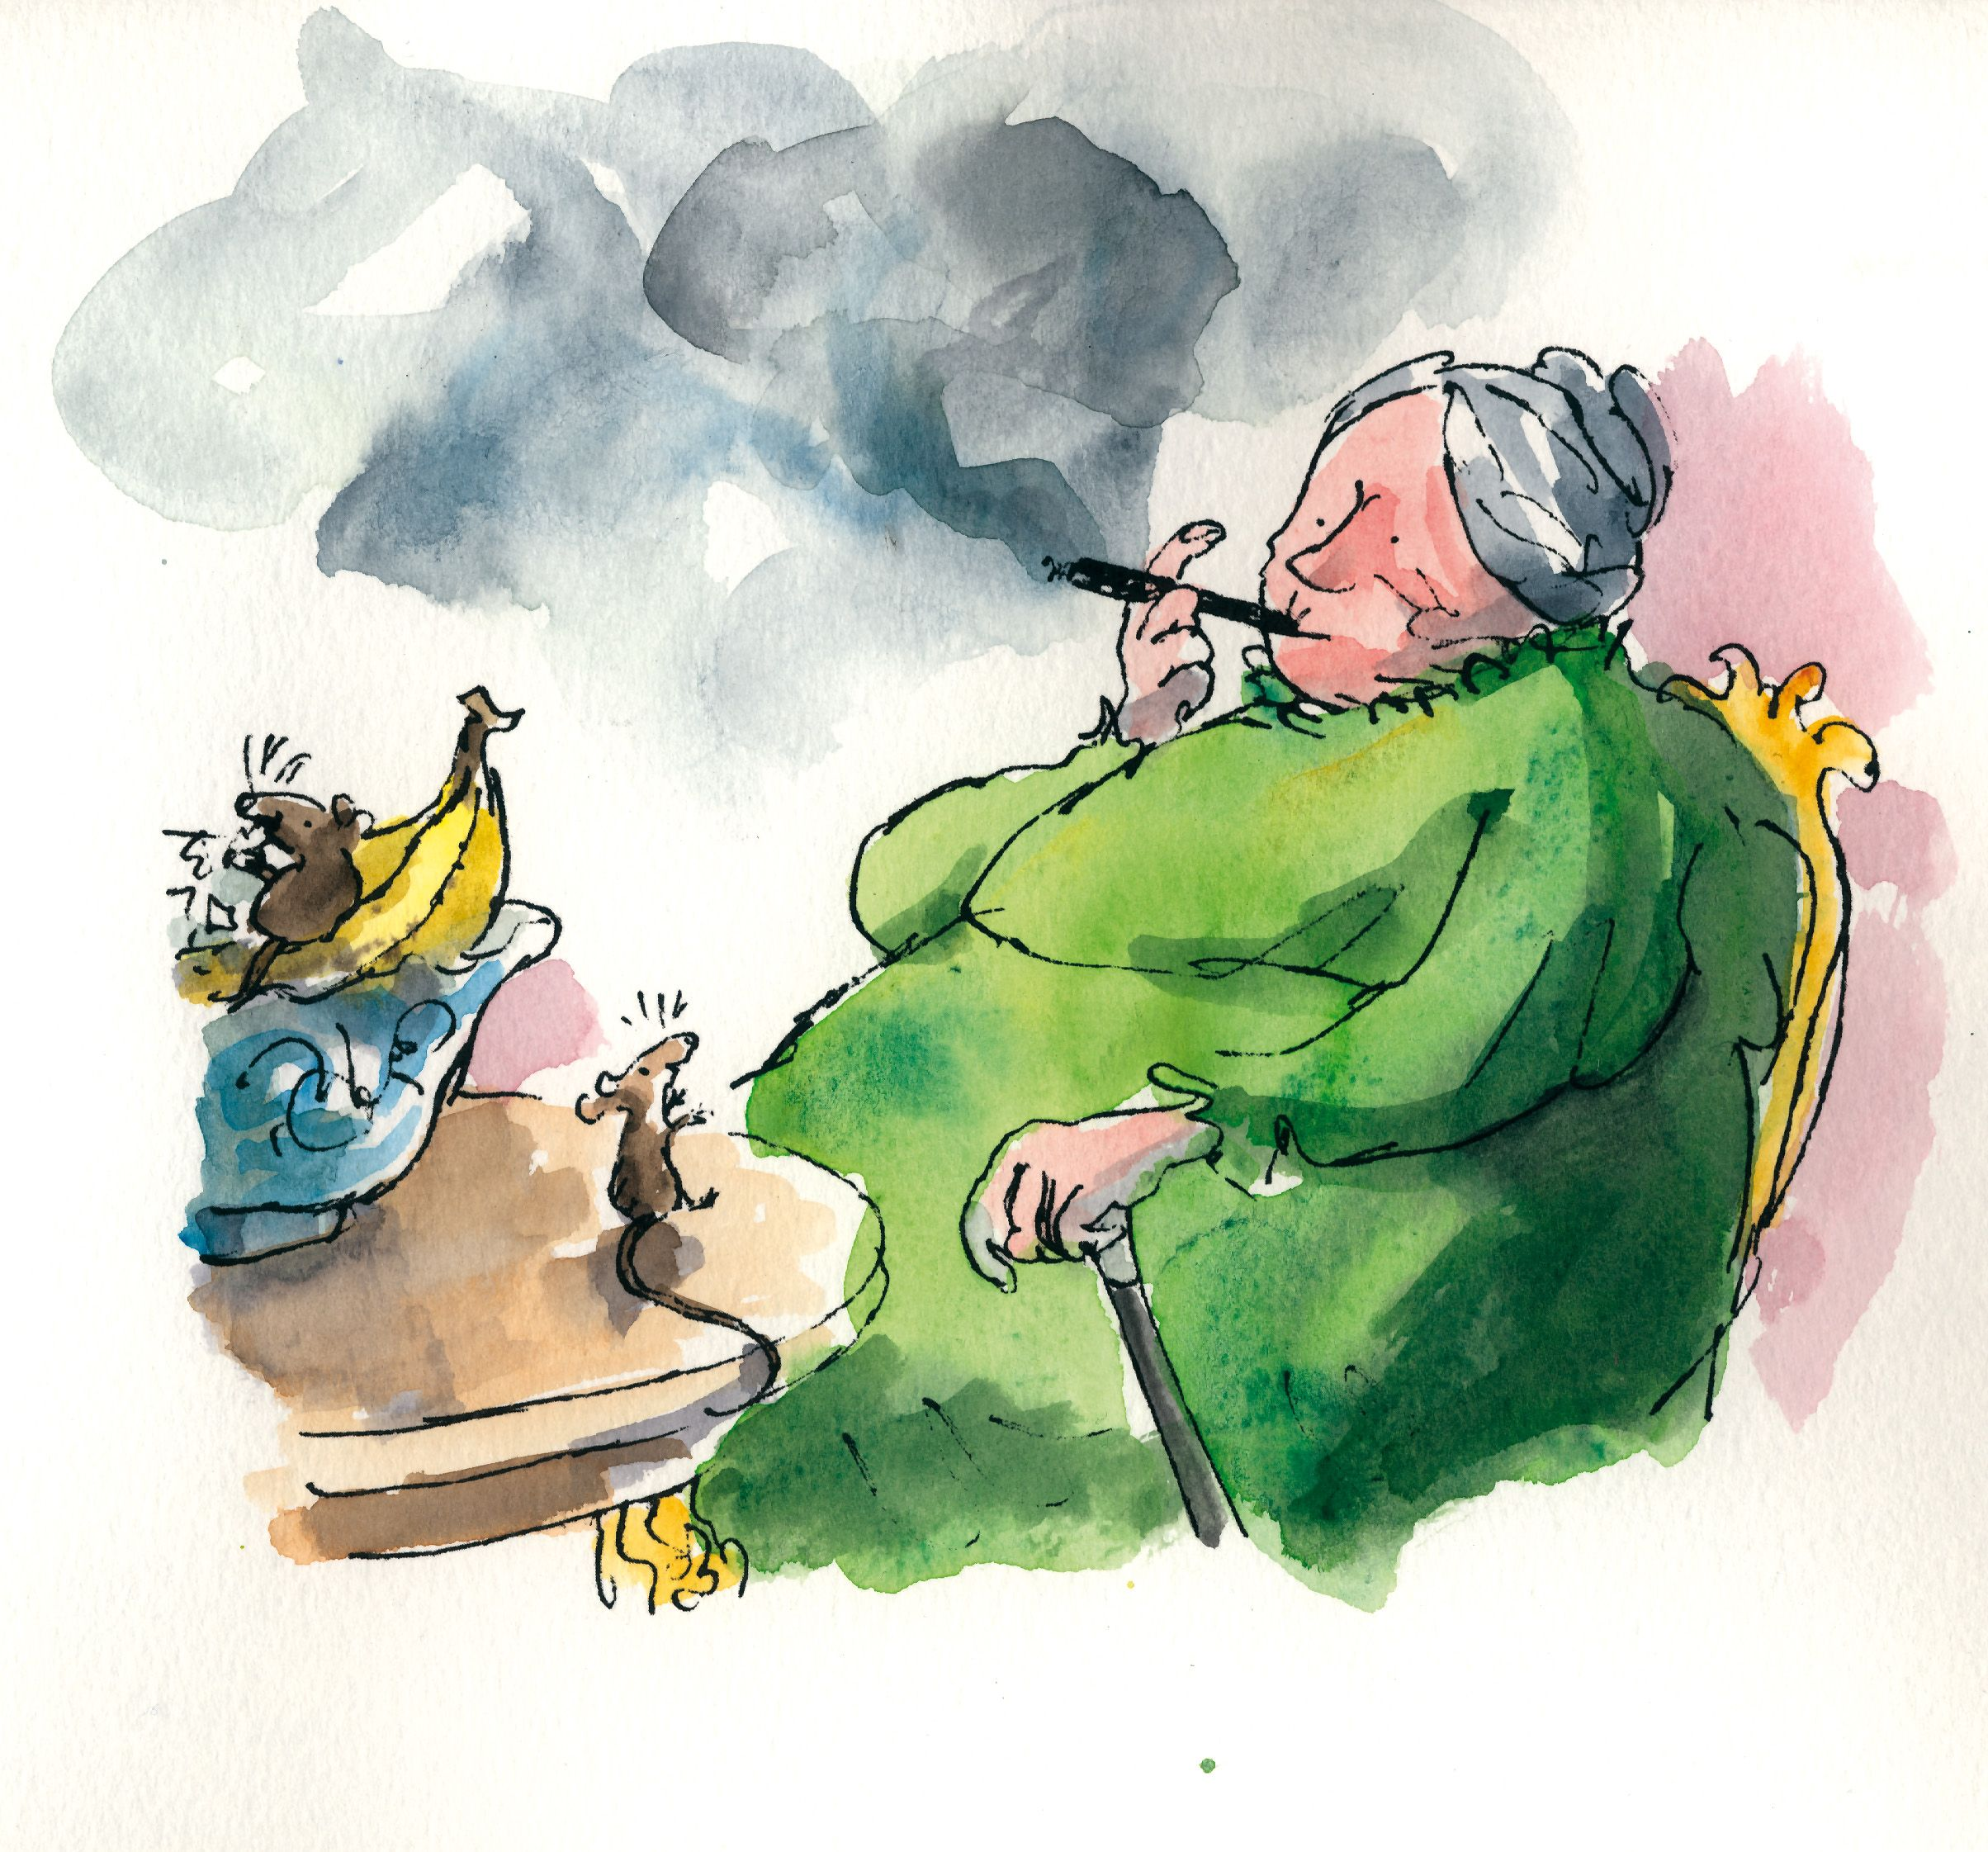 Quentin Blake Illustration From The Witches With